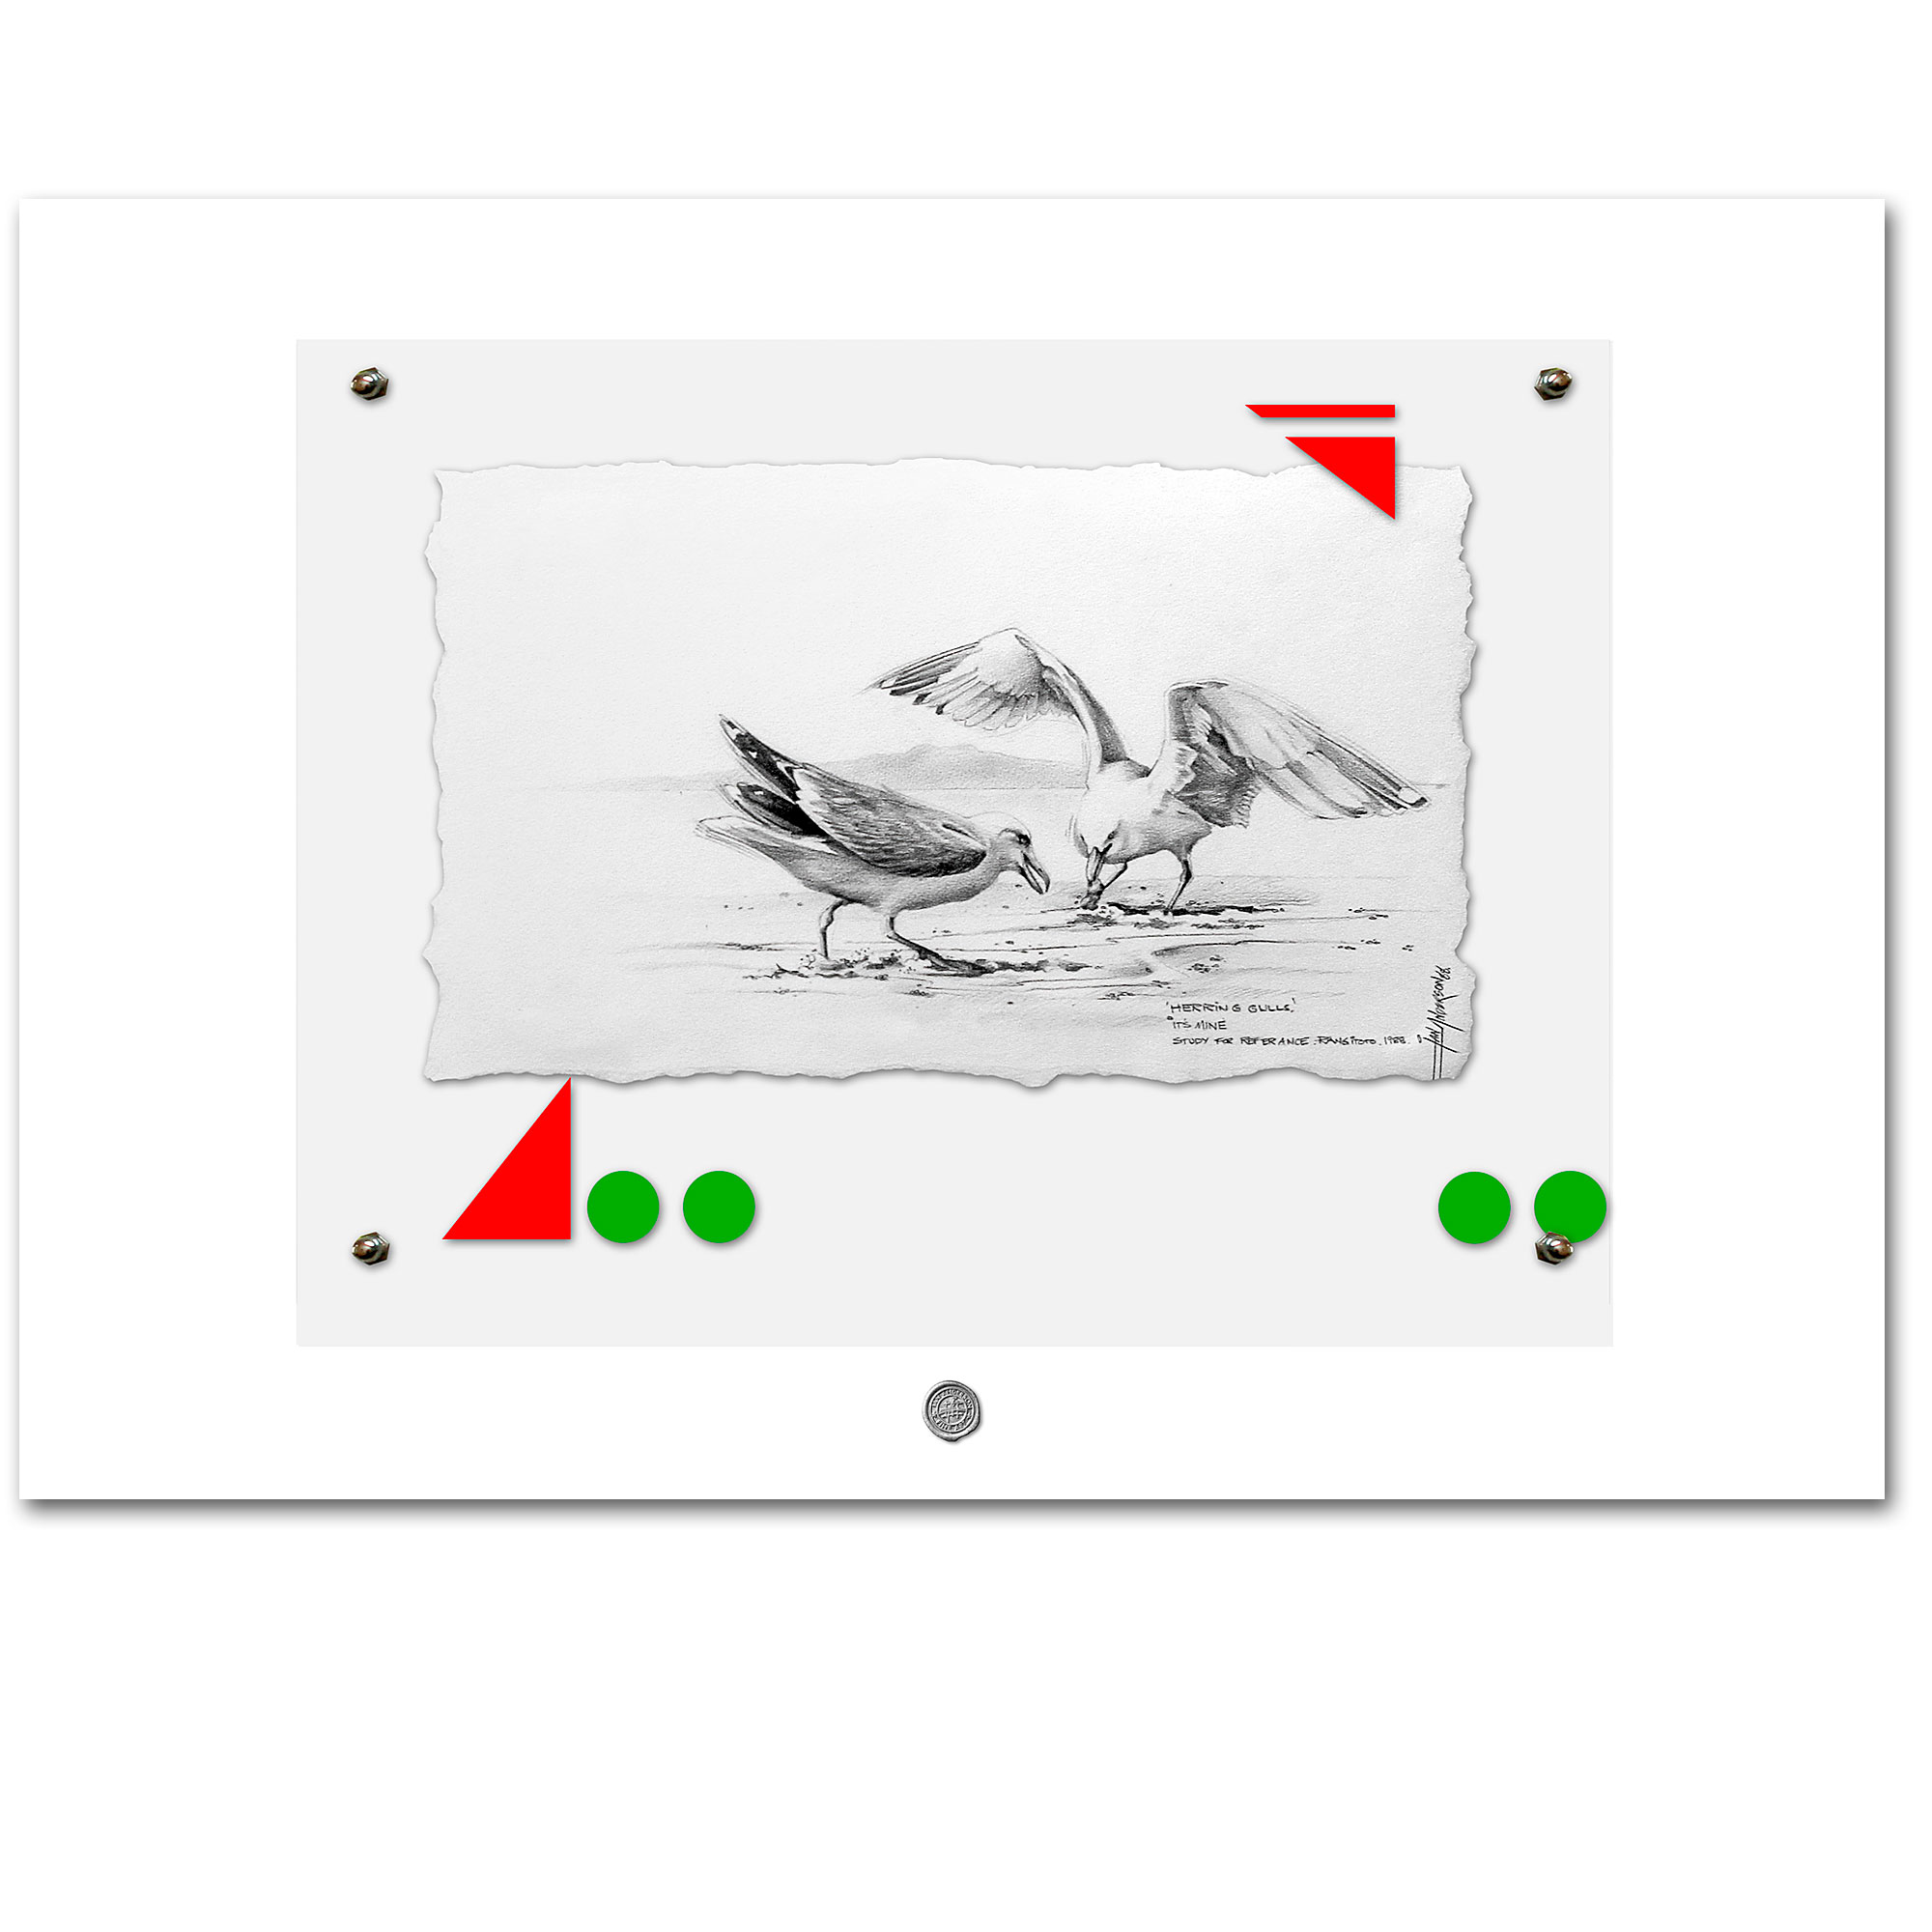 Passion and defence - A lesson from the gulls. Lead pencil illustration on archival fine art paper and mounted on gesso primed hardboard behind perspective.